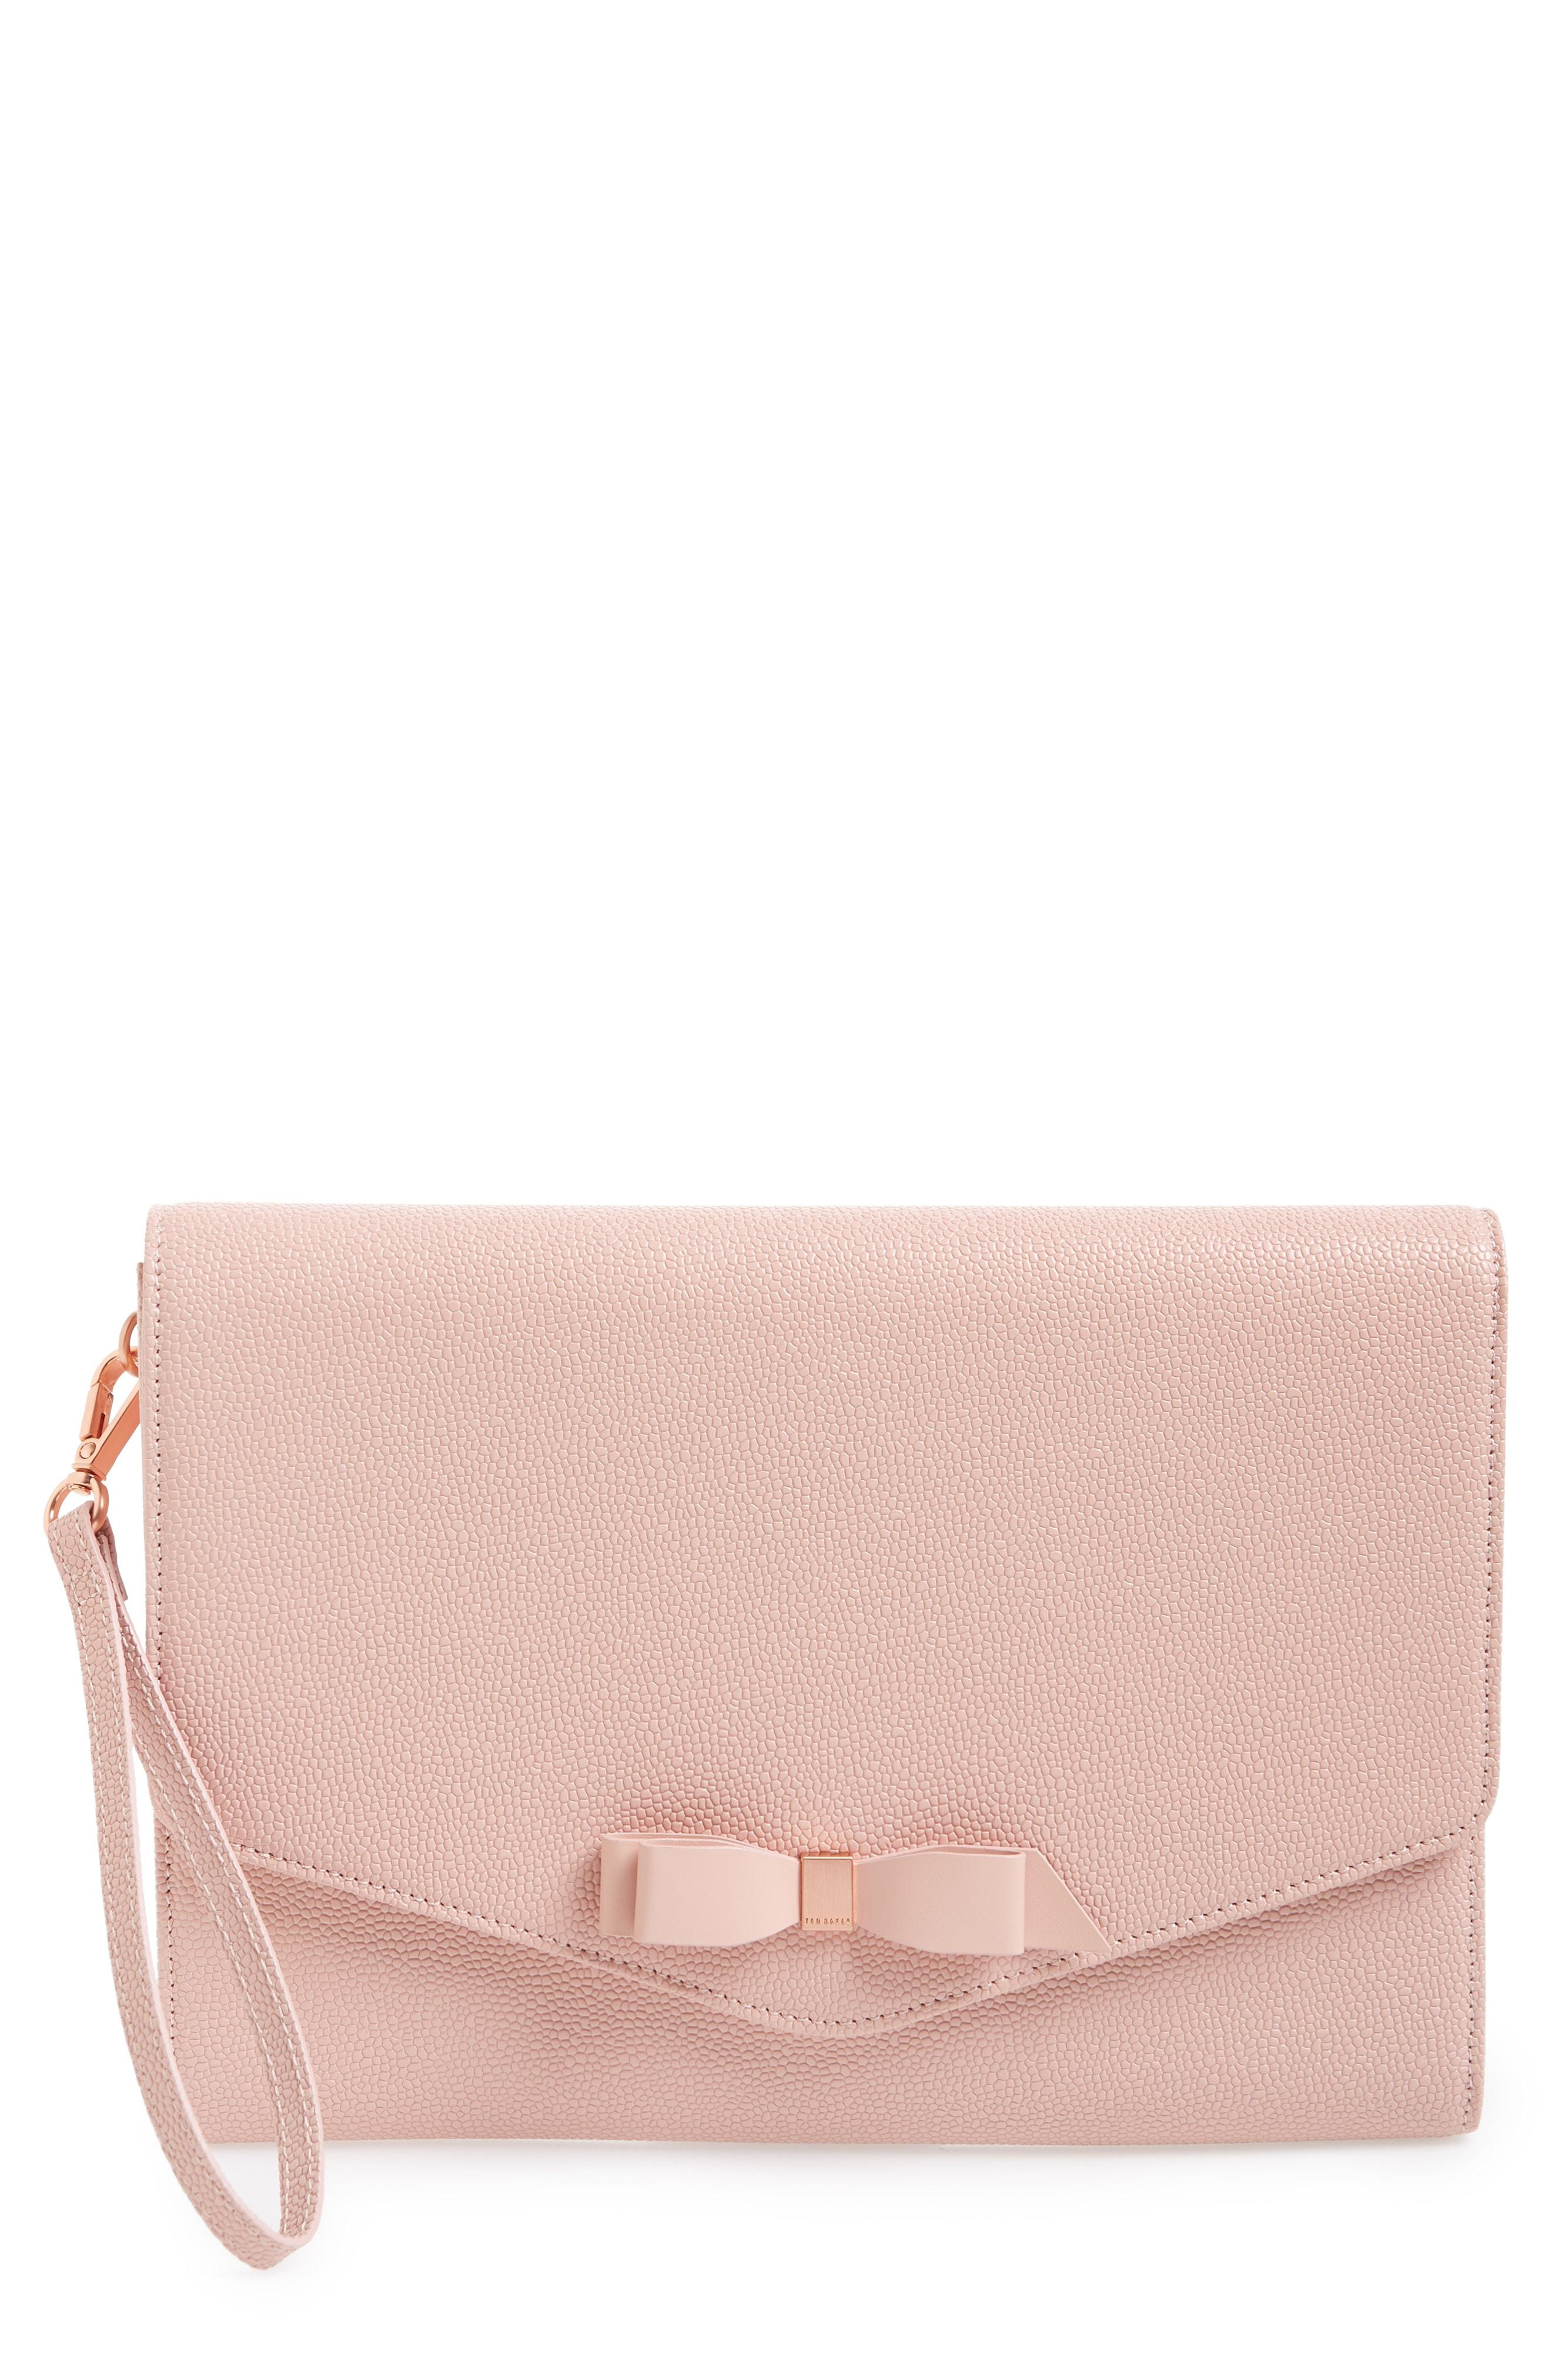 6db4a03a4a183 Lyst - Ted Baker Krystan Bow Leather Envelope Clutch in Pink